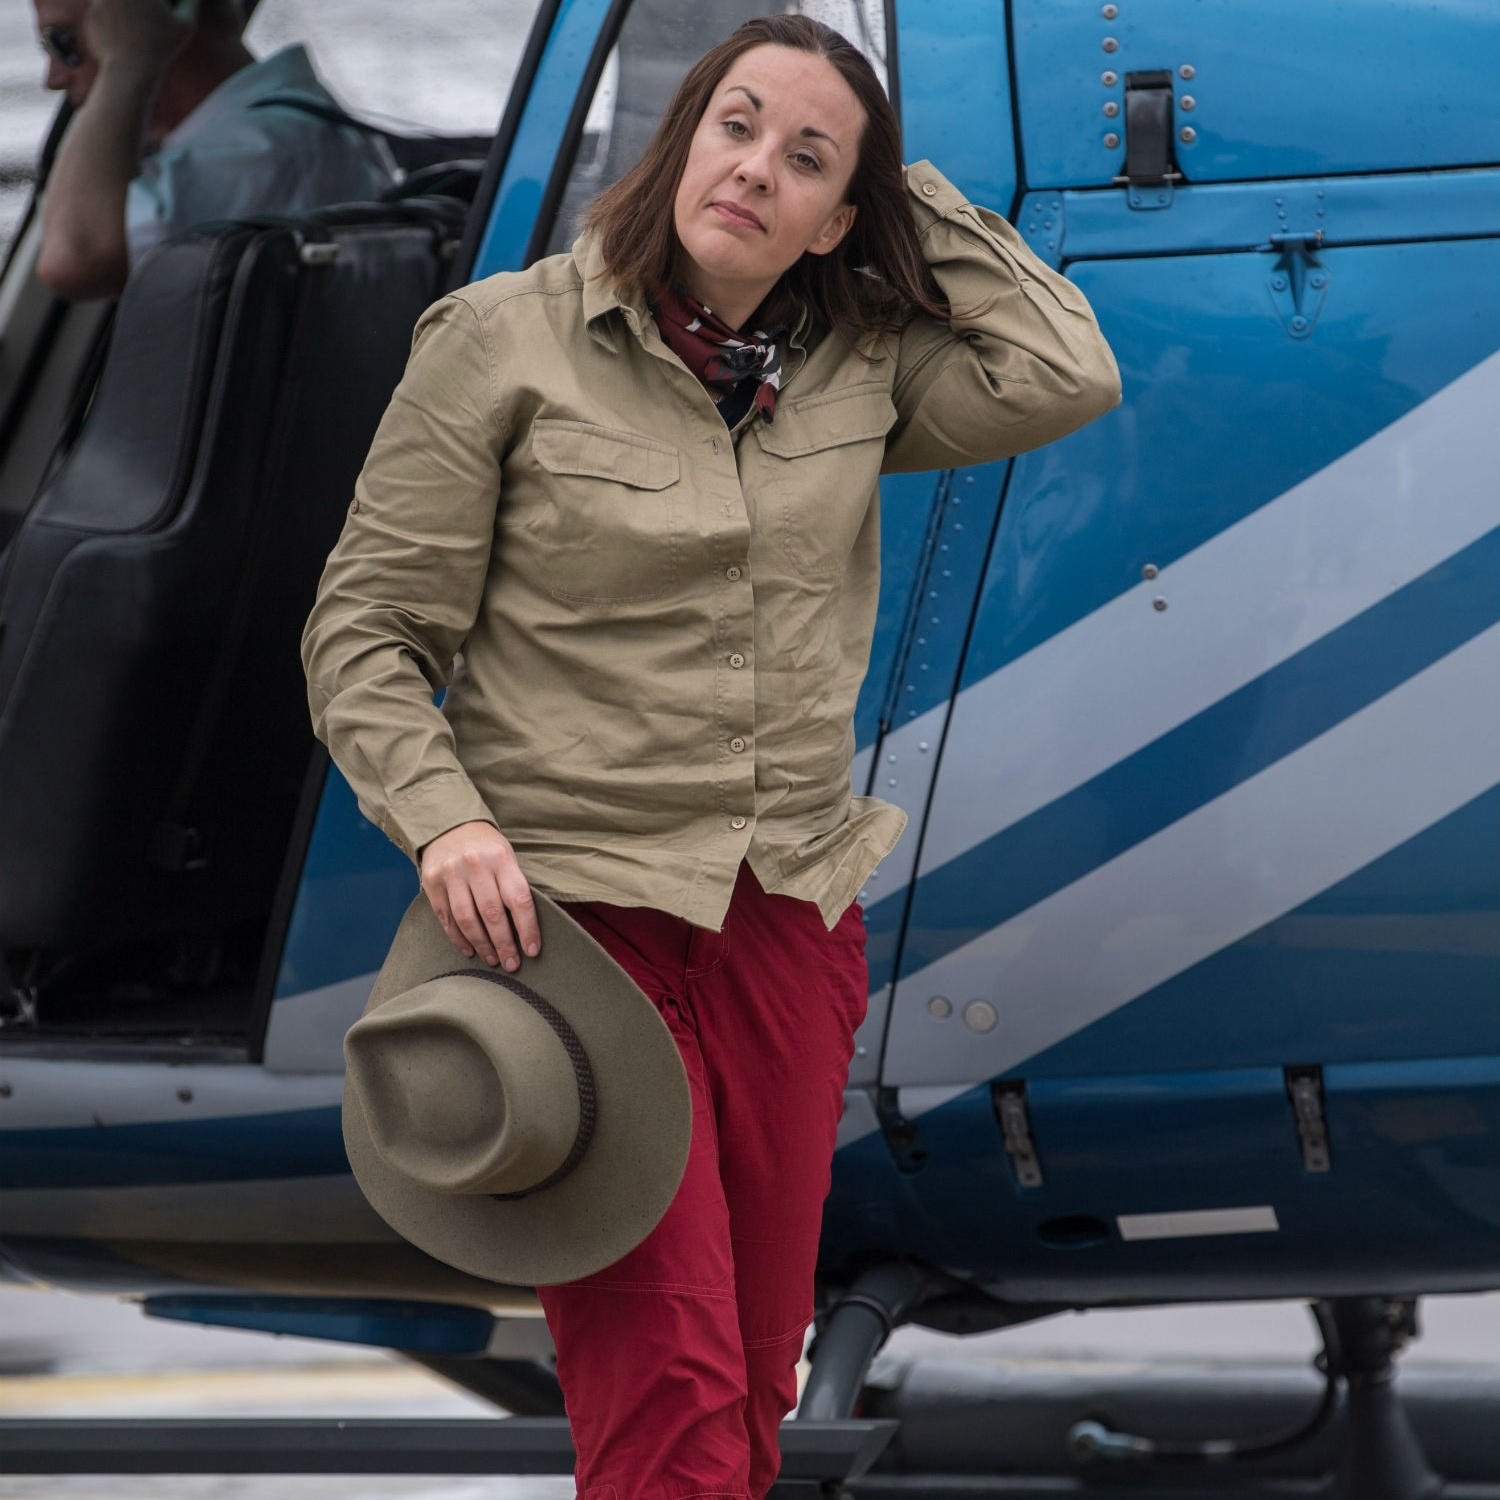 Kezia touches down in Australia.